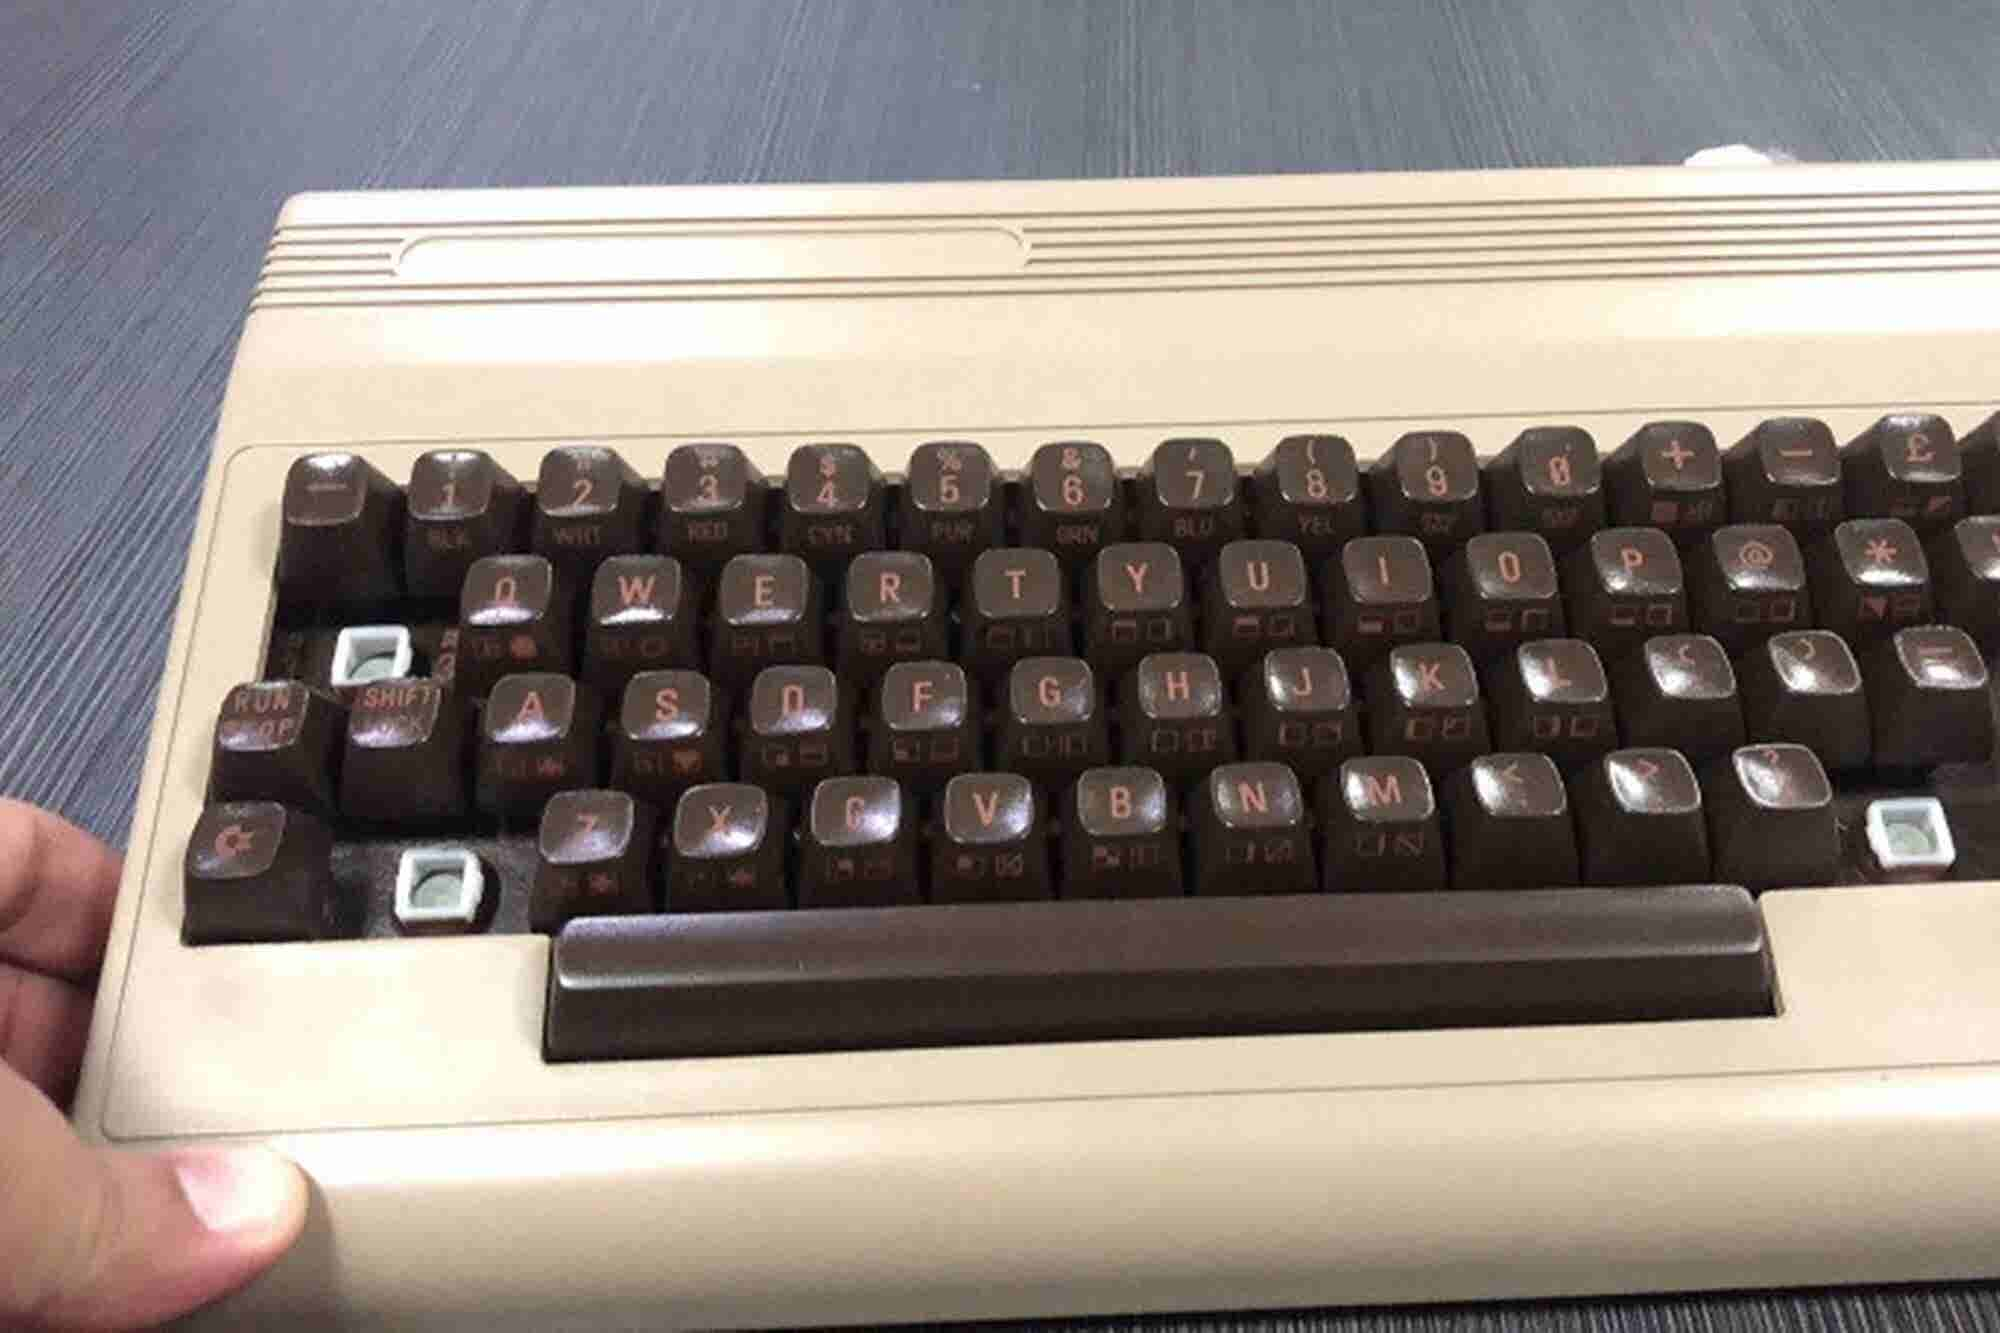 We're Getting a Full-Size Commodore 64 in 2019